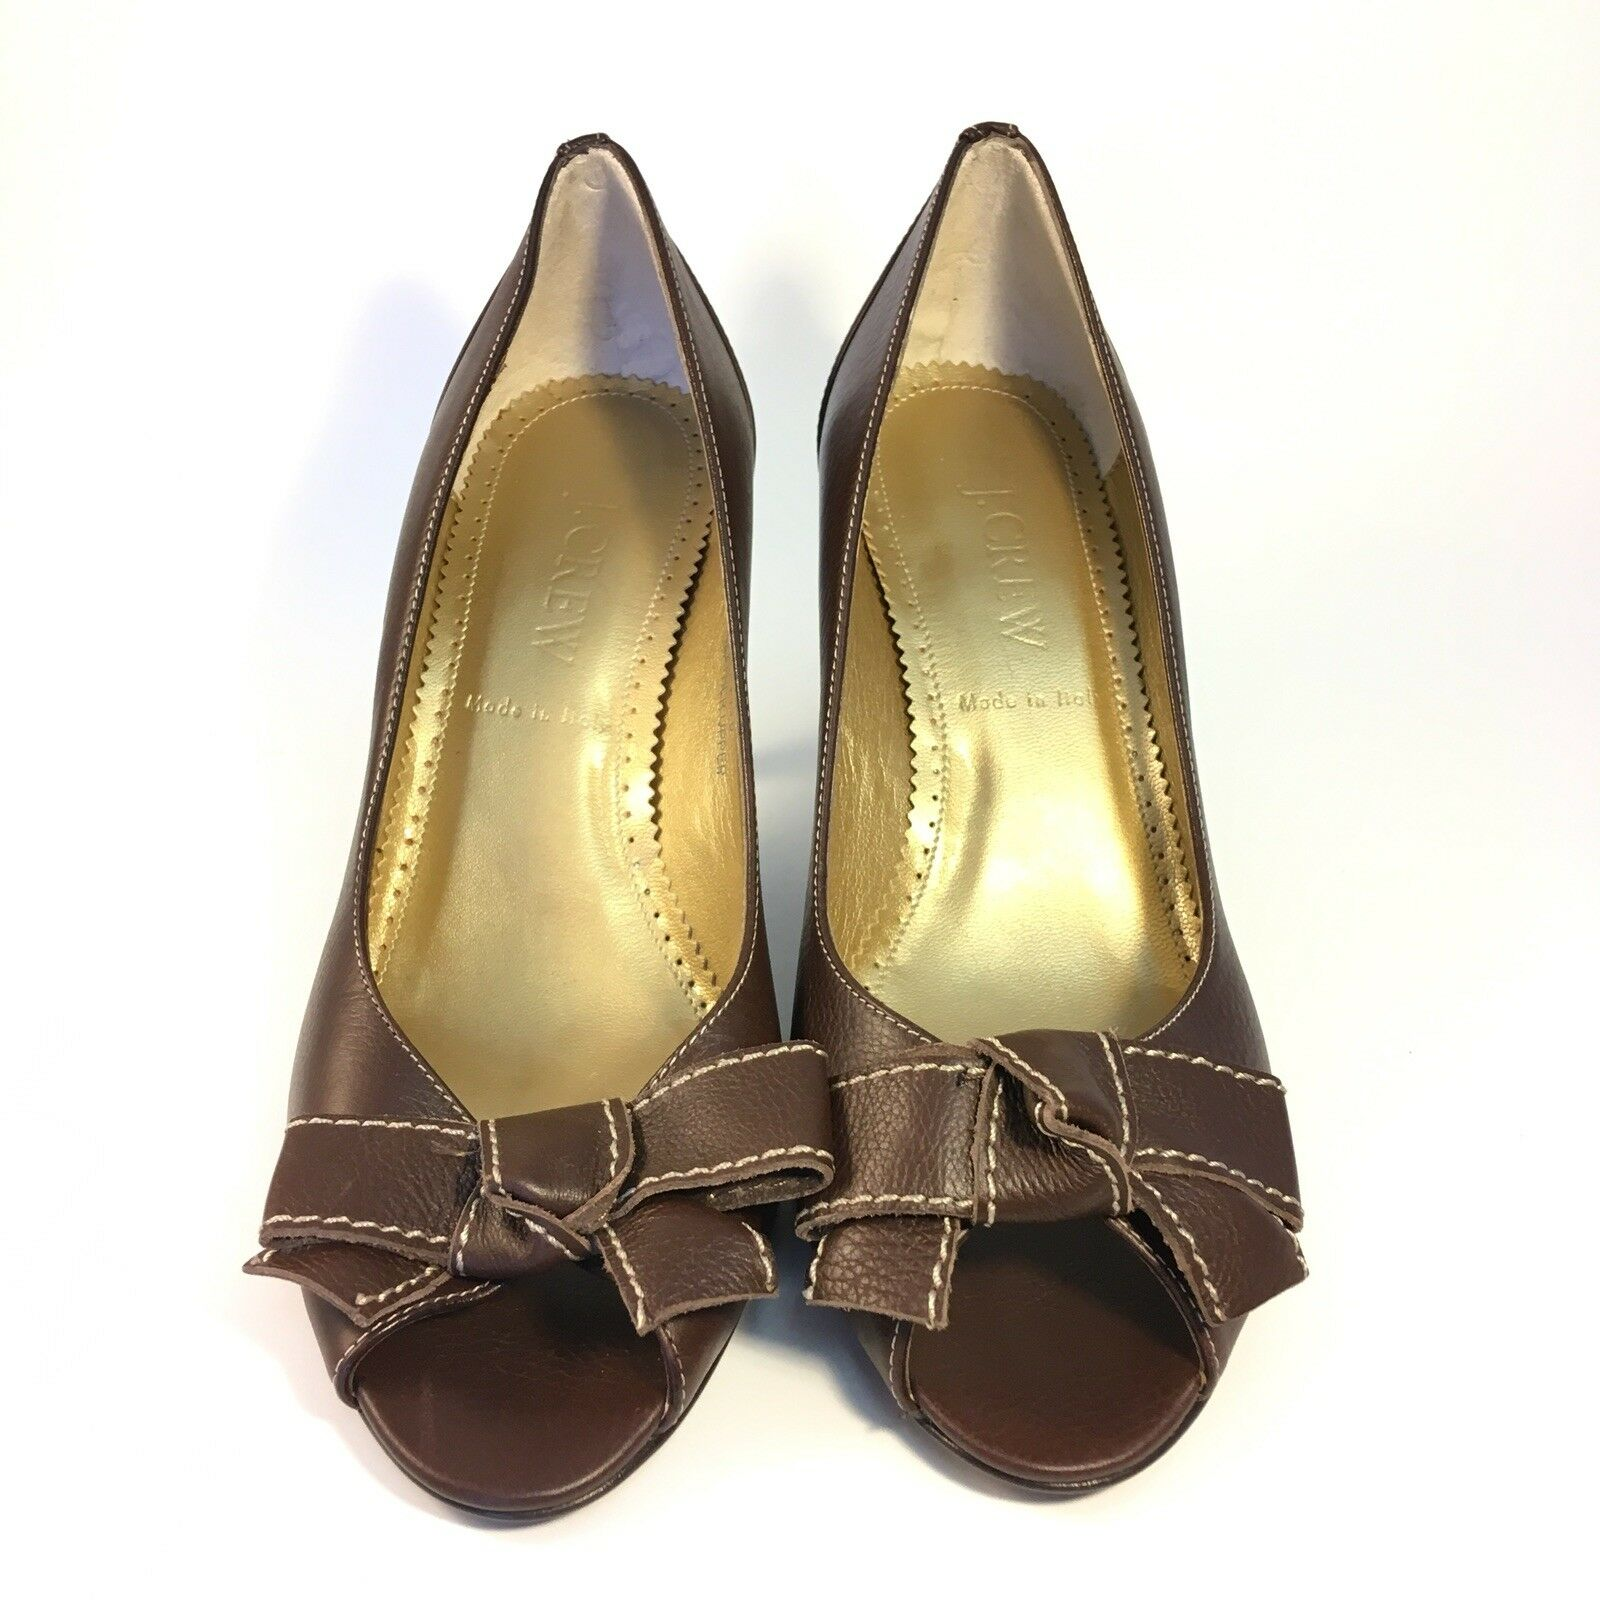 J. crew 6.5 Peep Toe Heels marron Bow Made In  Leather Retro 40's 50's Pumps